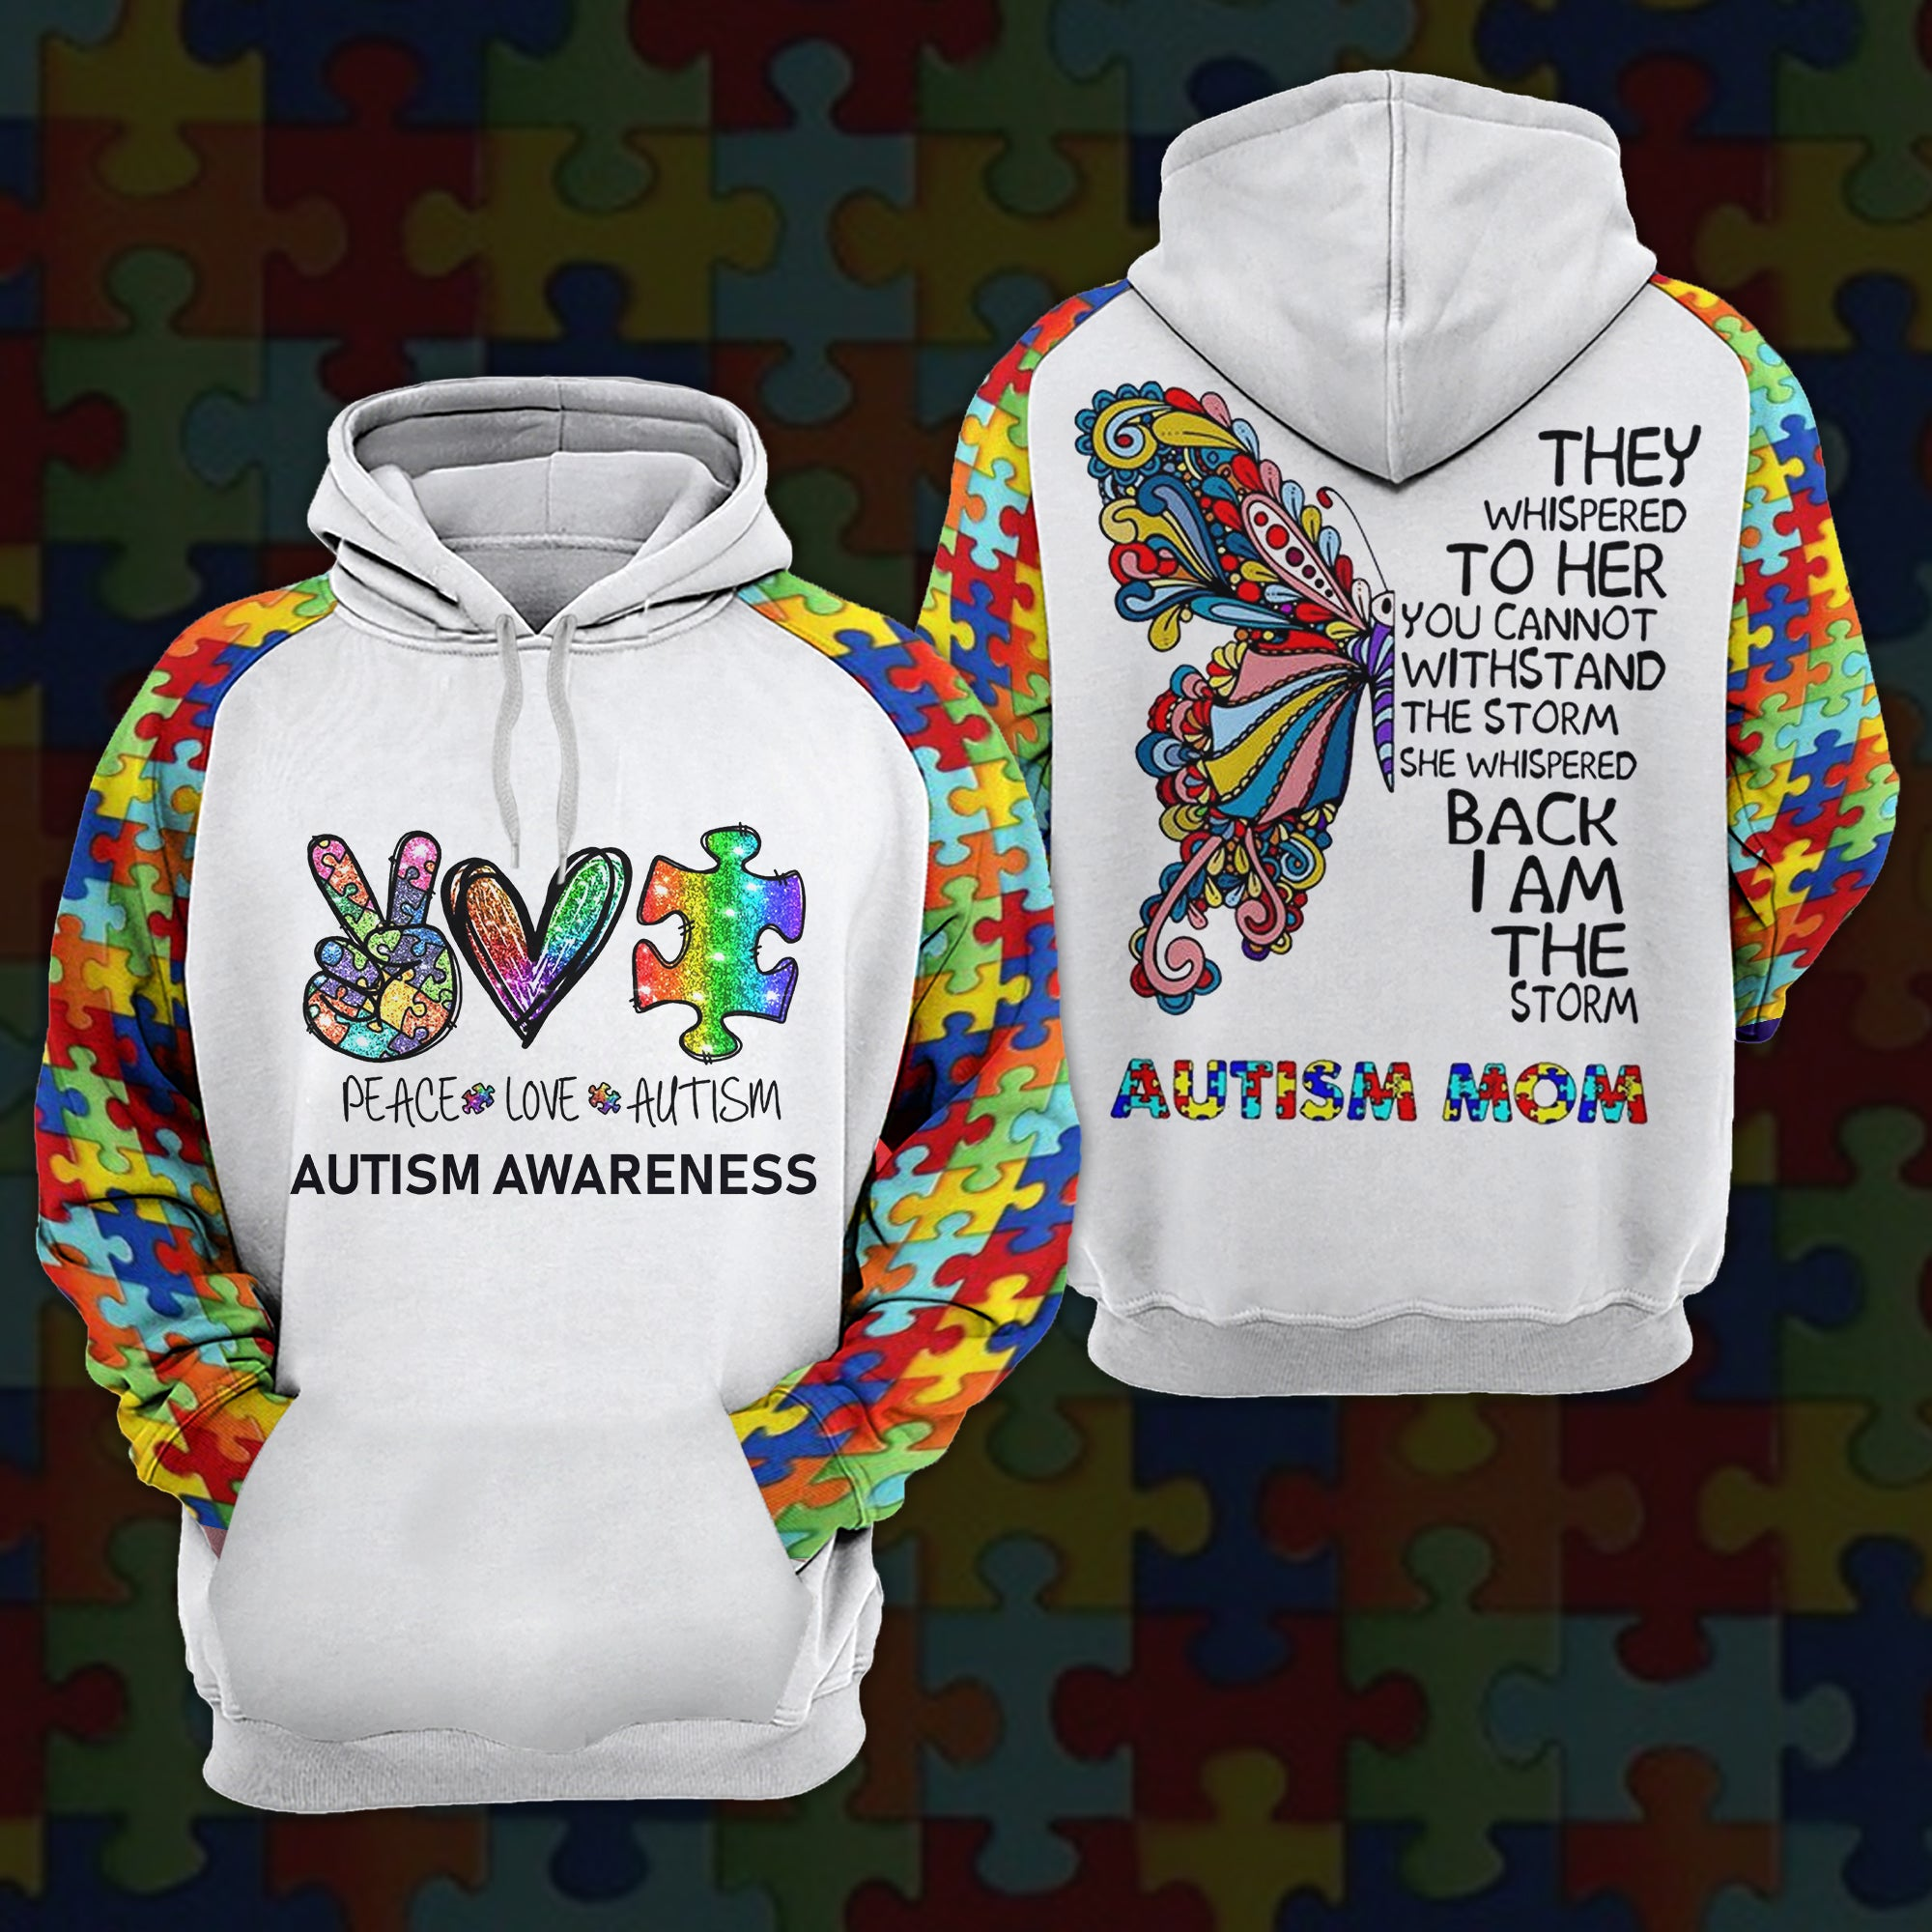 Autism Mom Hoodie/ T-shirt/ Sweater